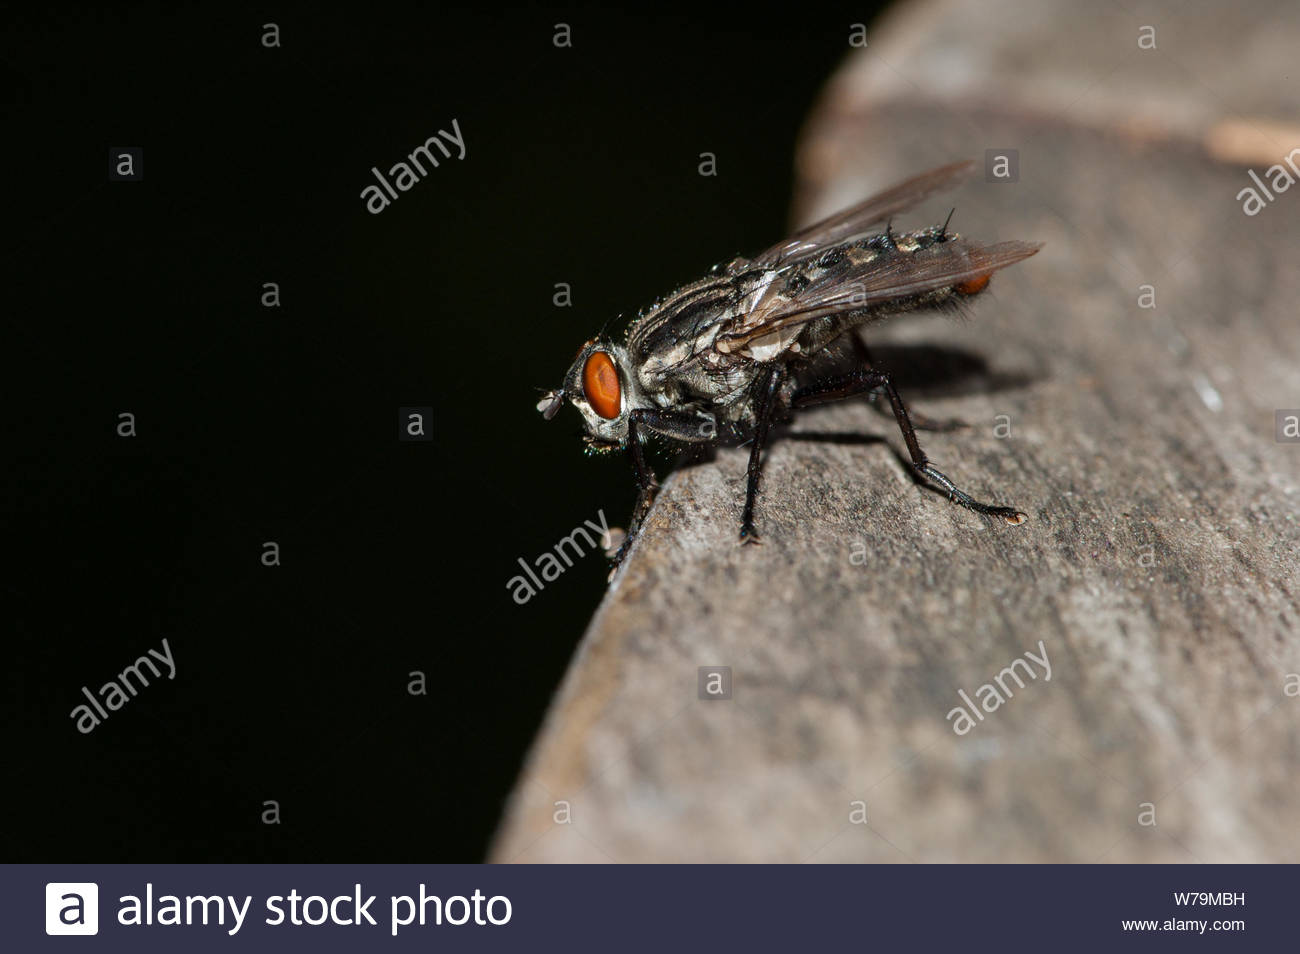 Housefly (Musca domestica) on a wooden outdoor table edge. Stock Photo